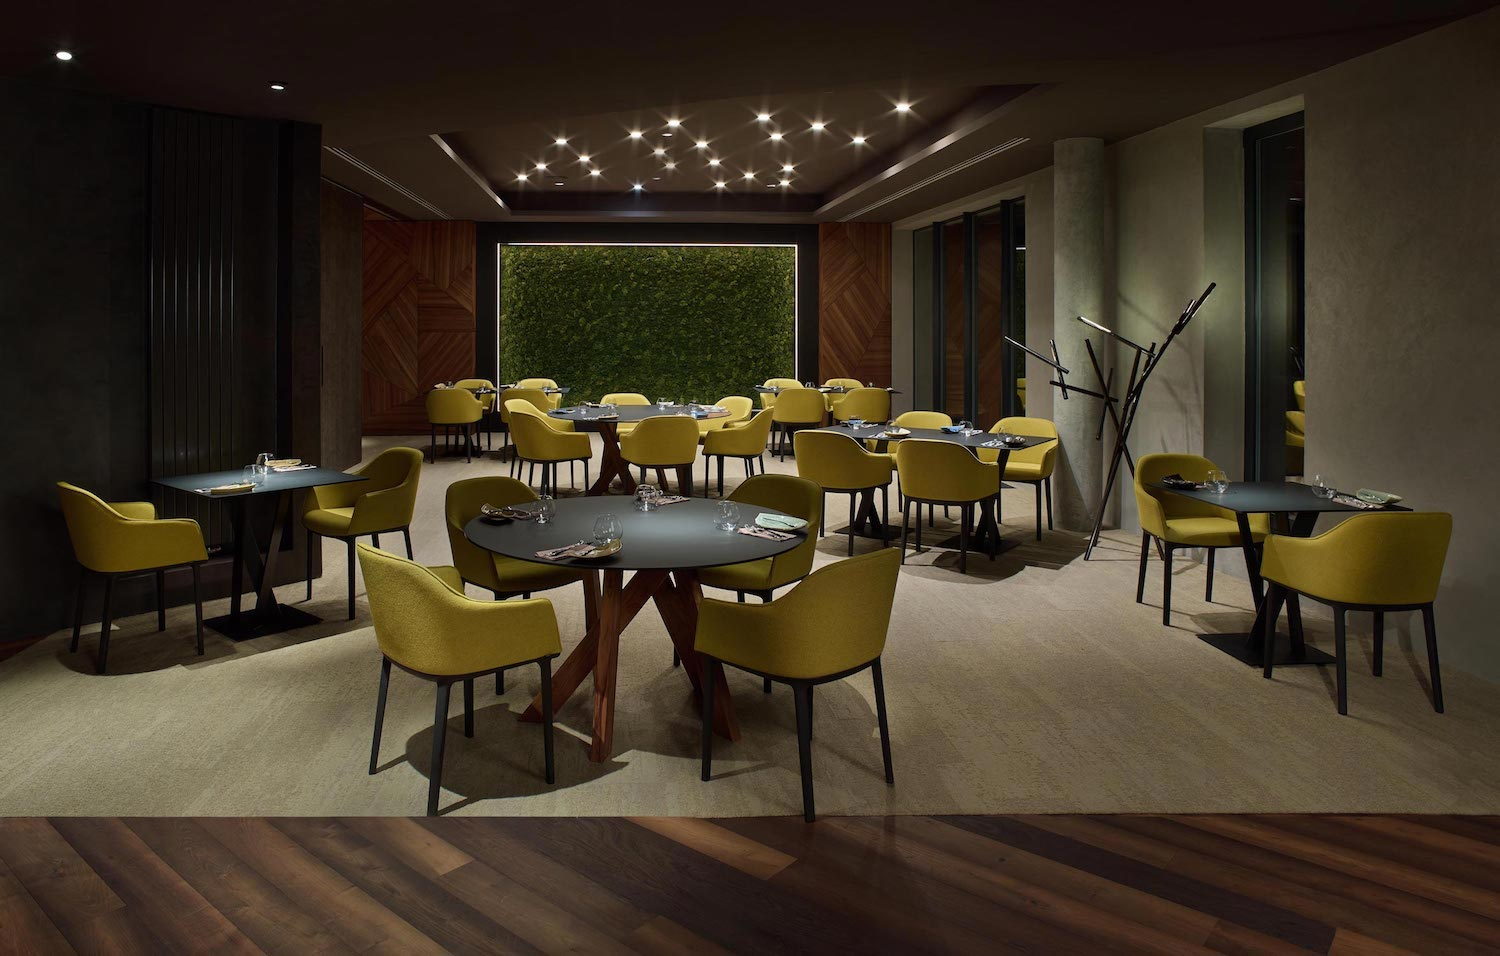 restaurants u0026 bars archives caandesign architecture and home